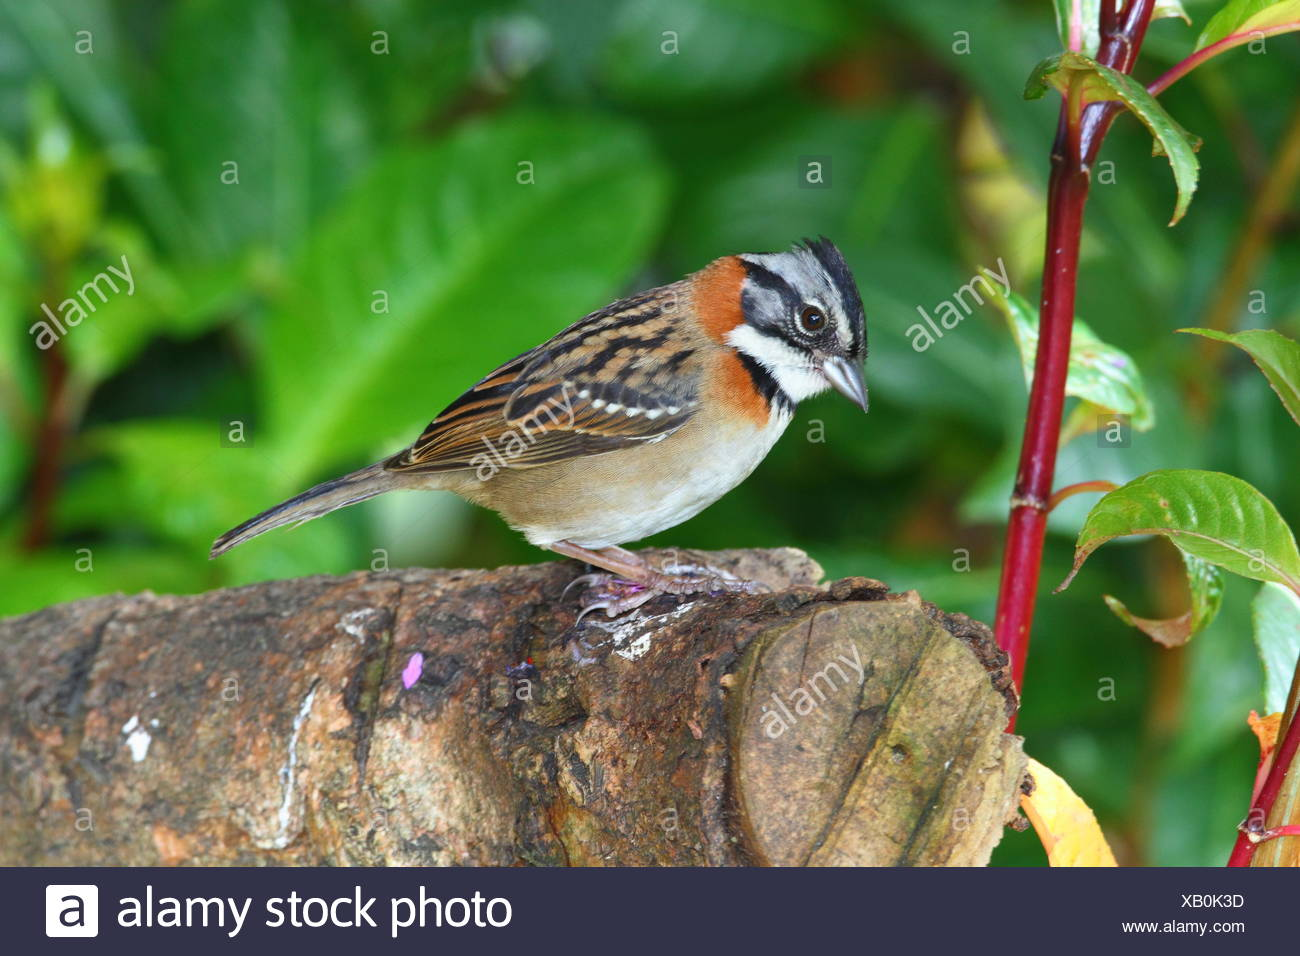 A rufous-collared sparrow, Zonotrichia capensis, foraging on a log. Stock Photo